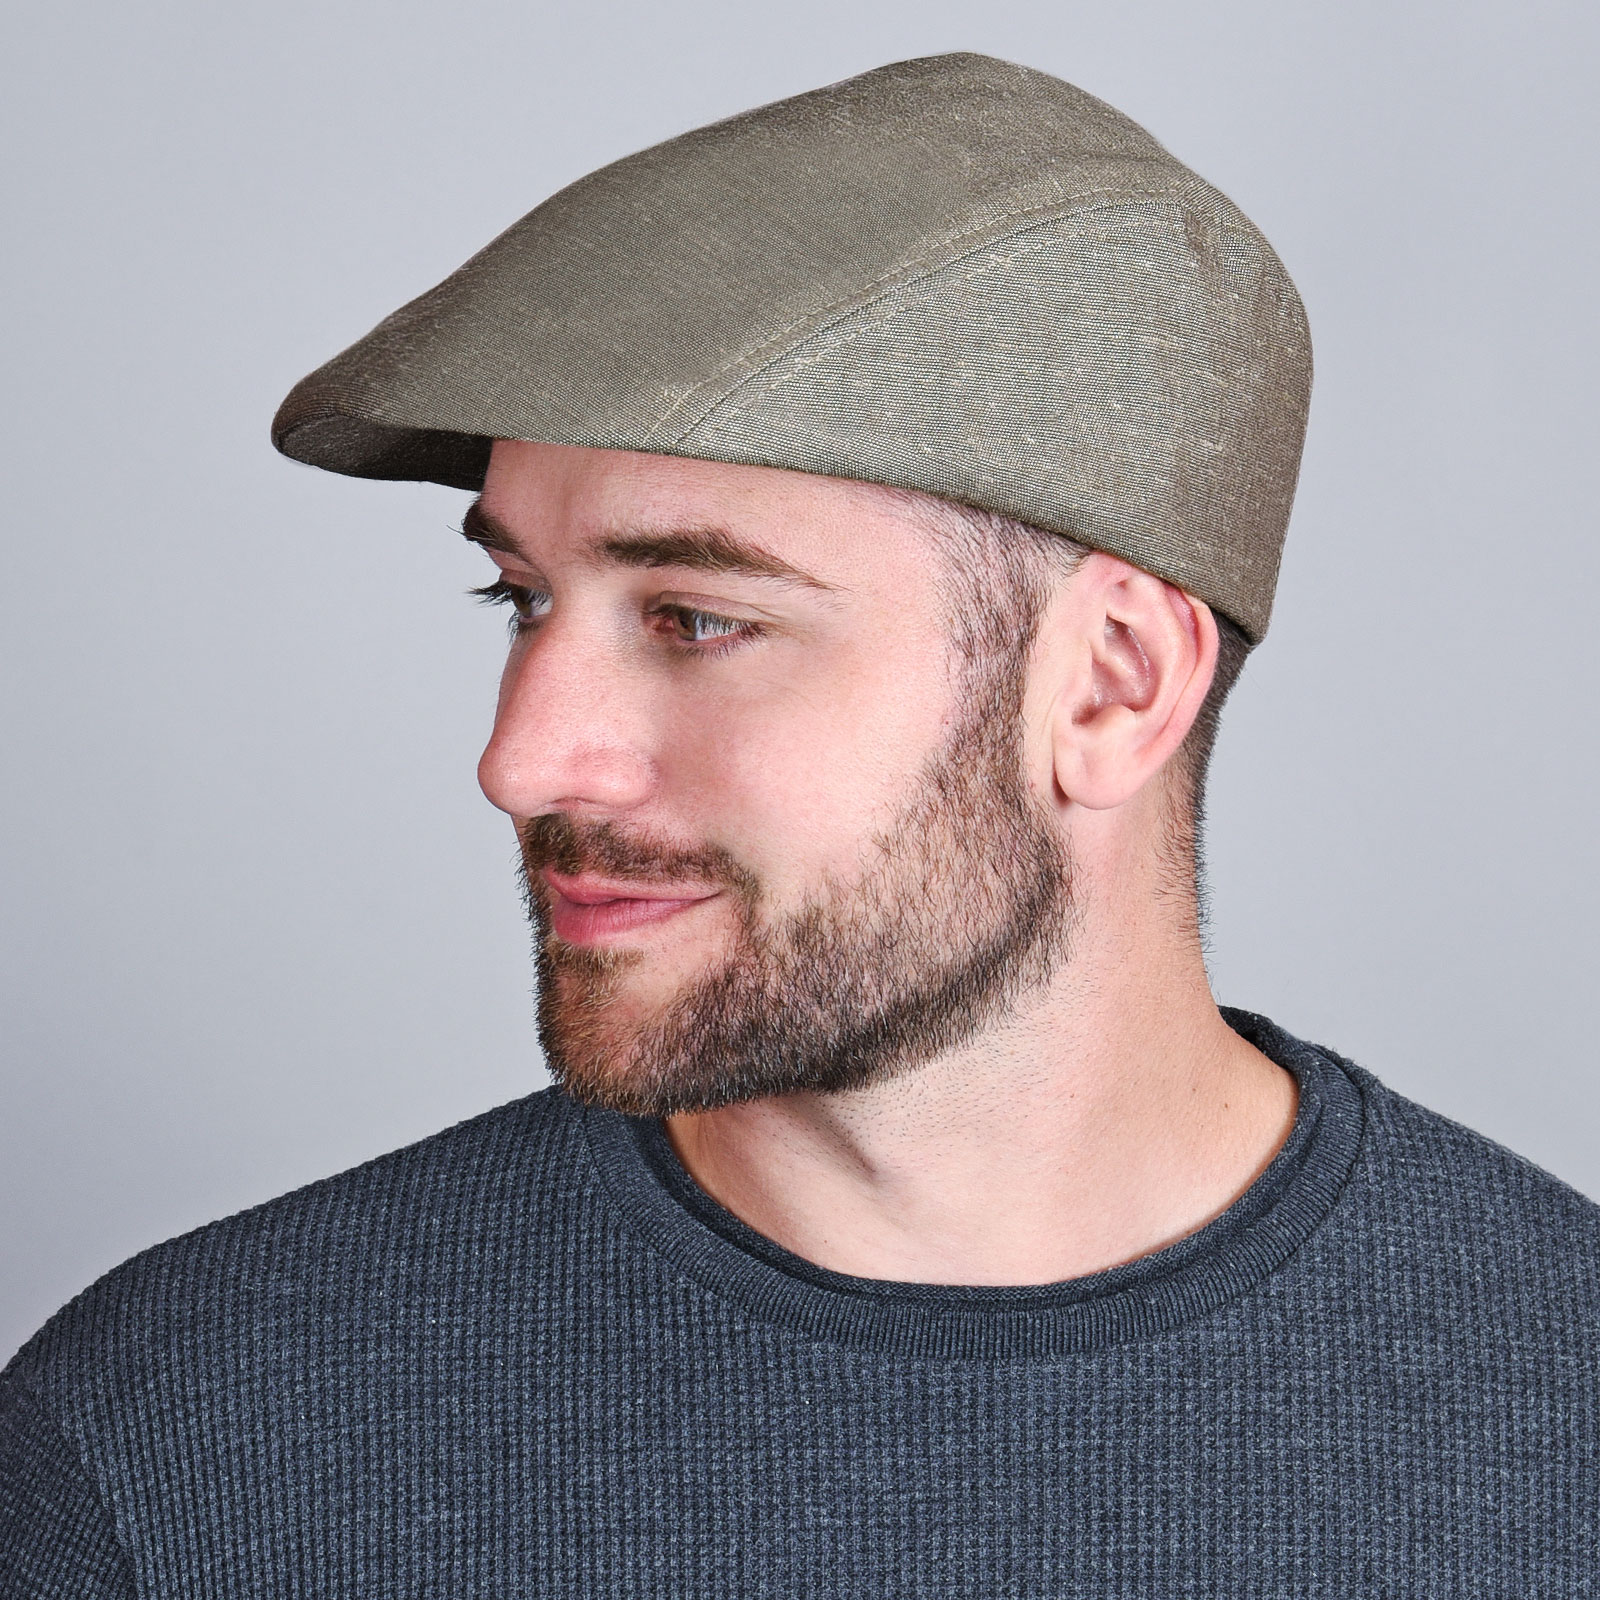 CP-00970-VH16-casquette-plate-homme-lin-naturel